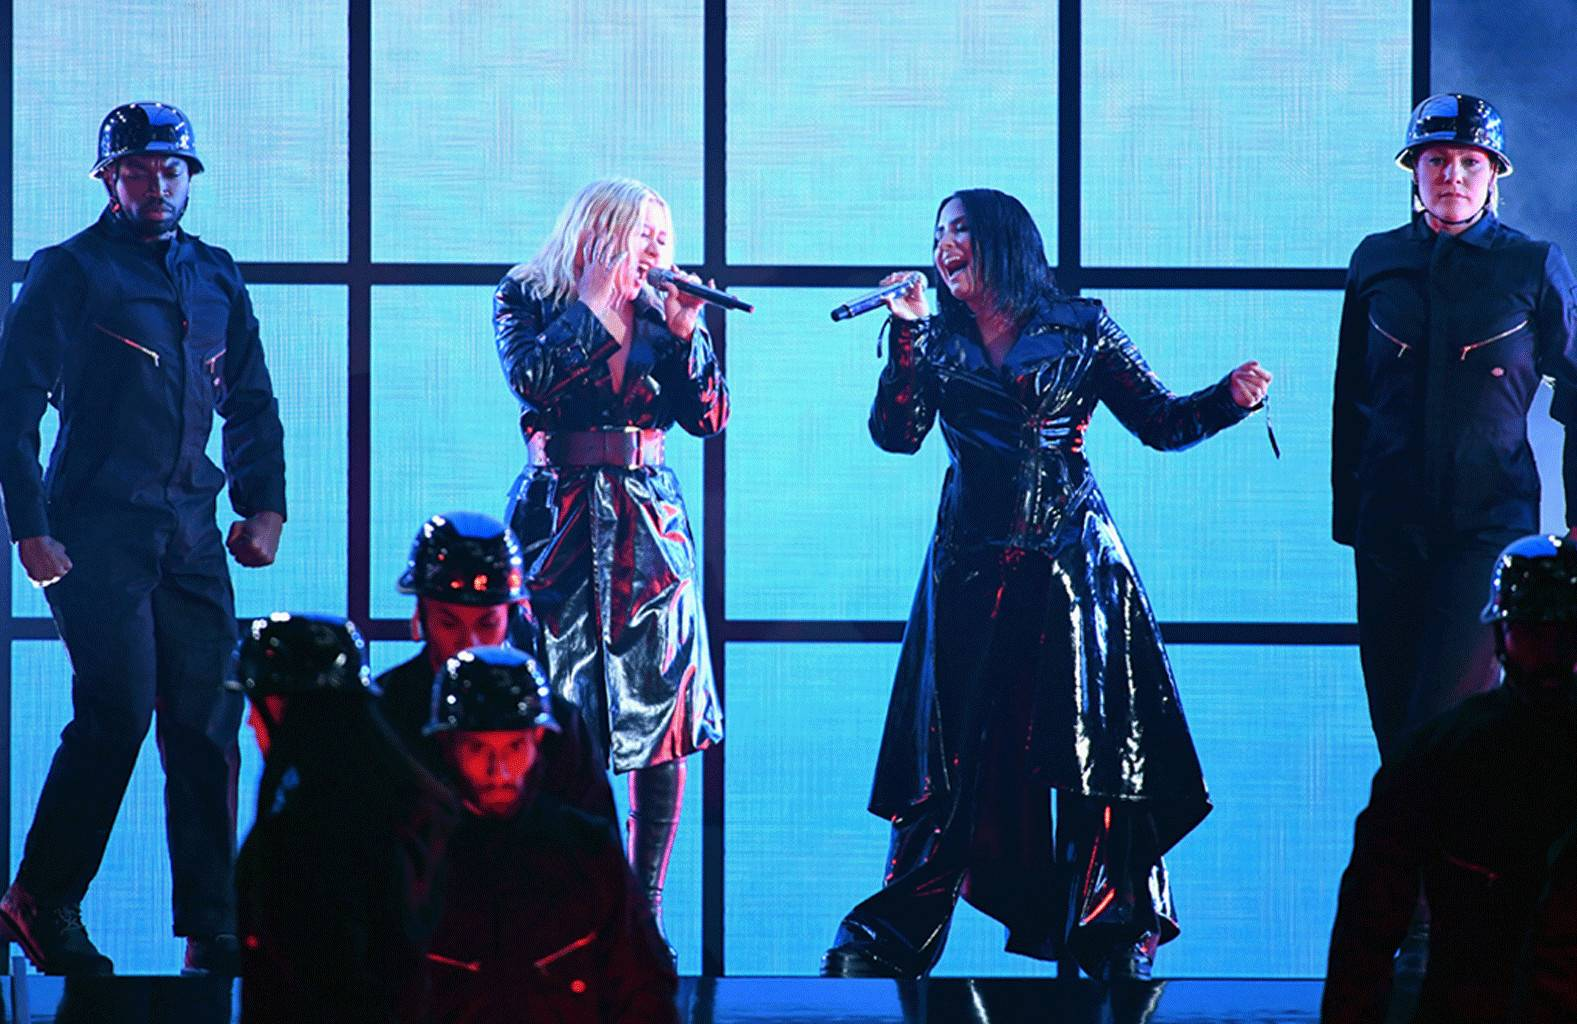 See Christina Aguilera, Demi Lovato's Rousing 'Fall in Line' Duet At BBMAs